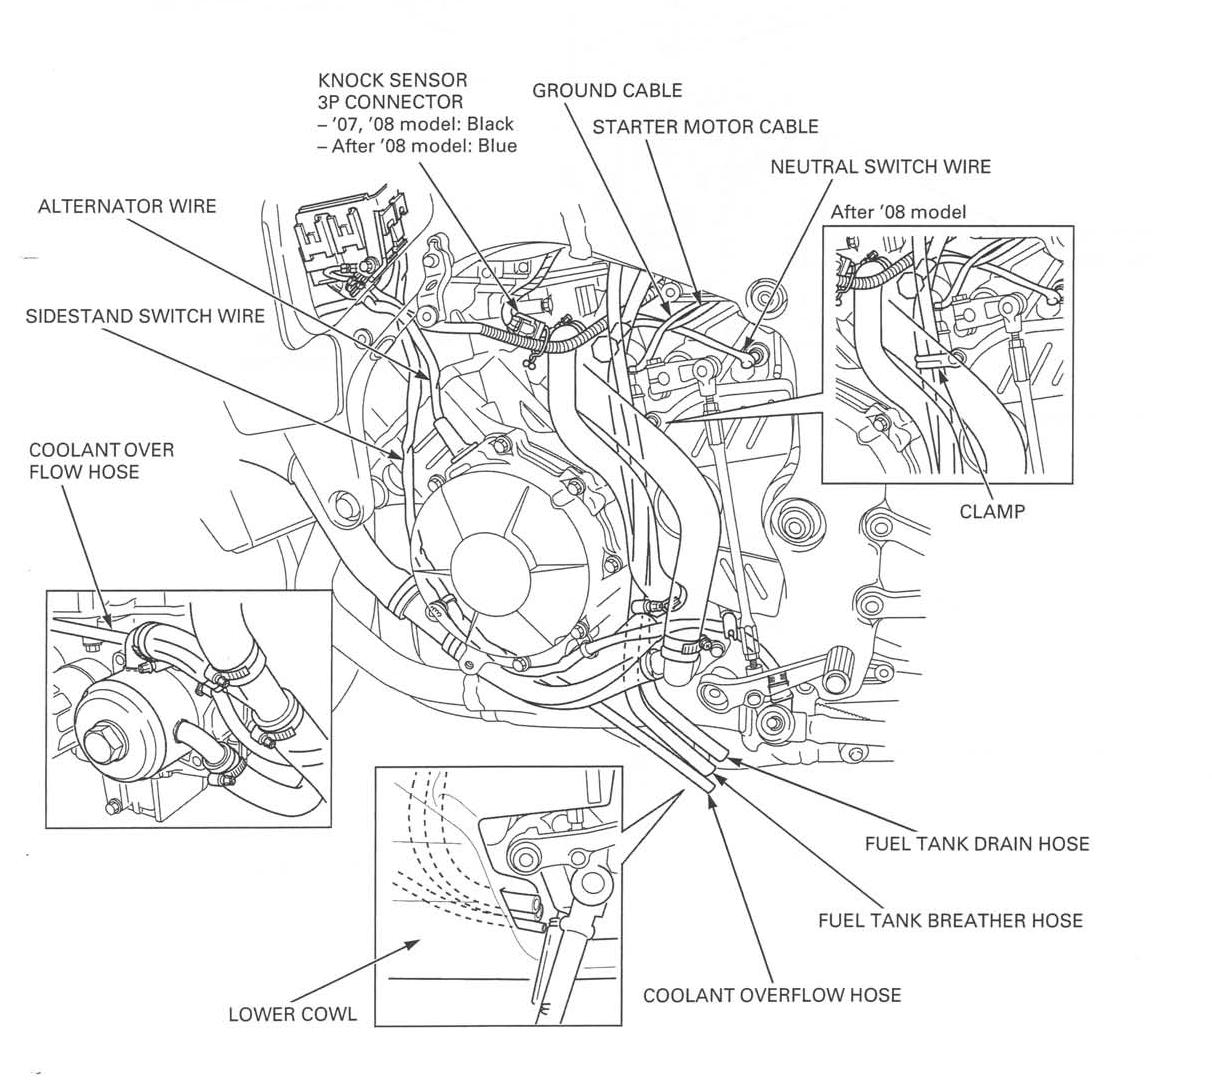 2005 Cbr 600 Rr Color Wiring Diagram